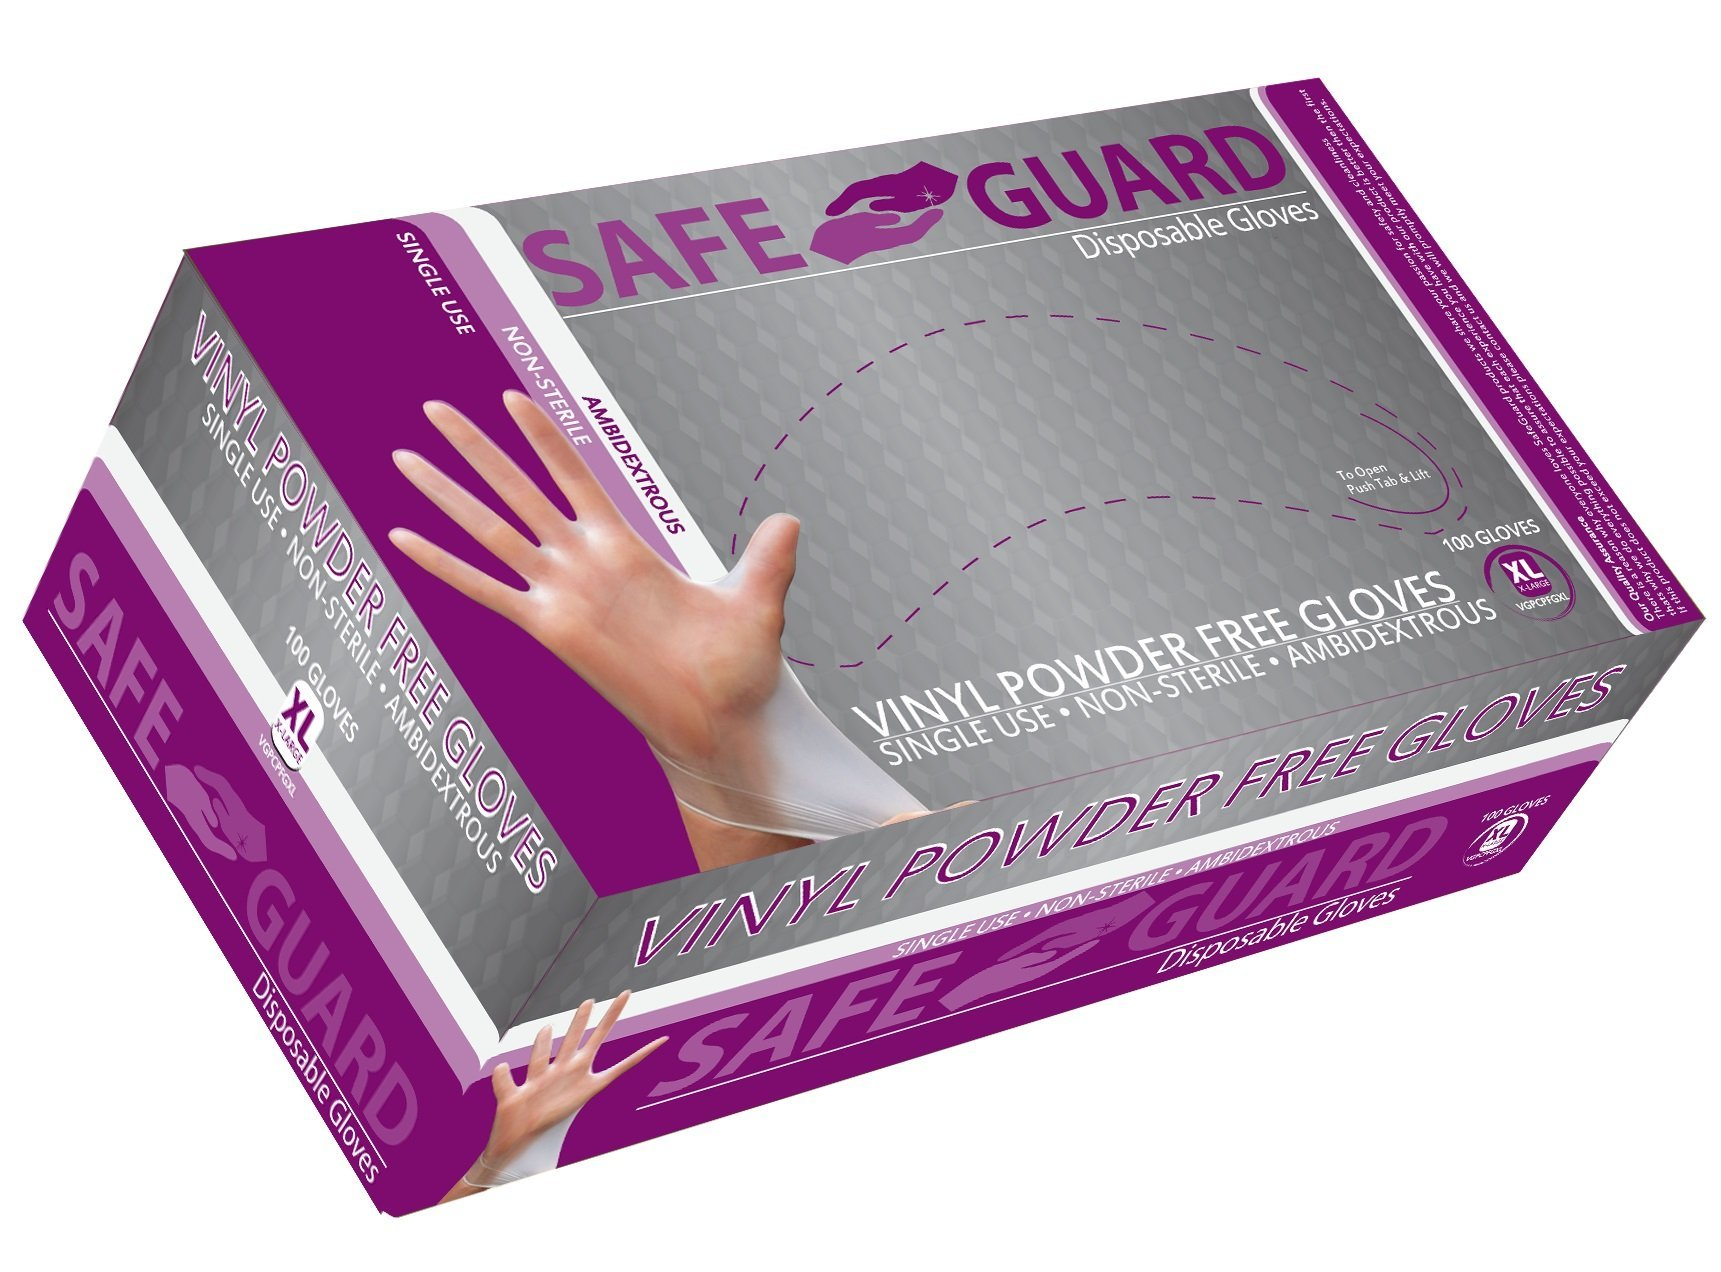 SAFEGUARD Vinly Powder Free Gloves, Medium, 100 Count (Pack of 10)